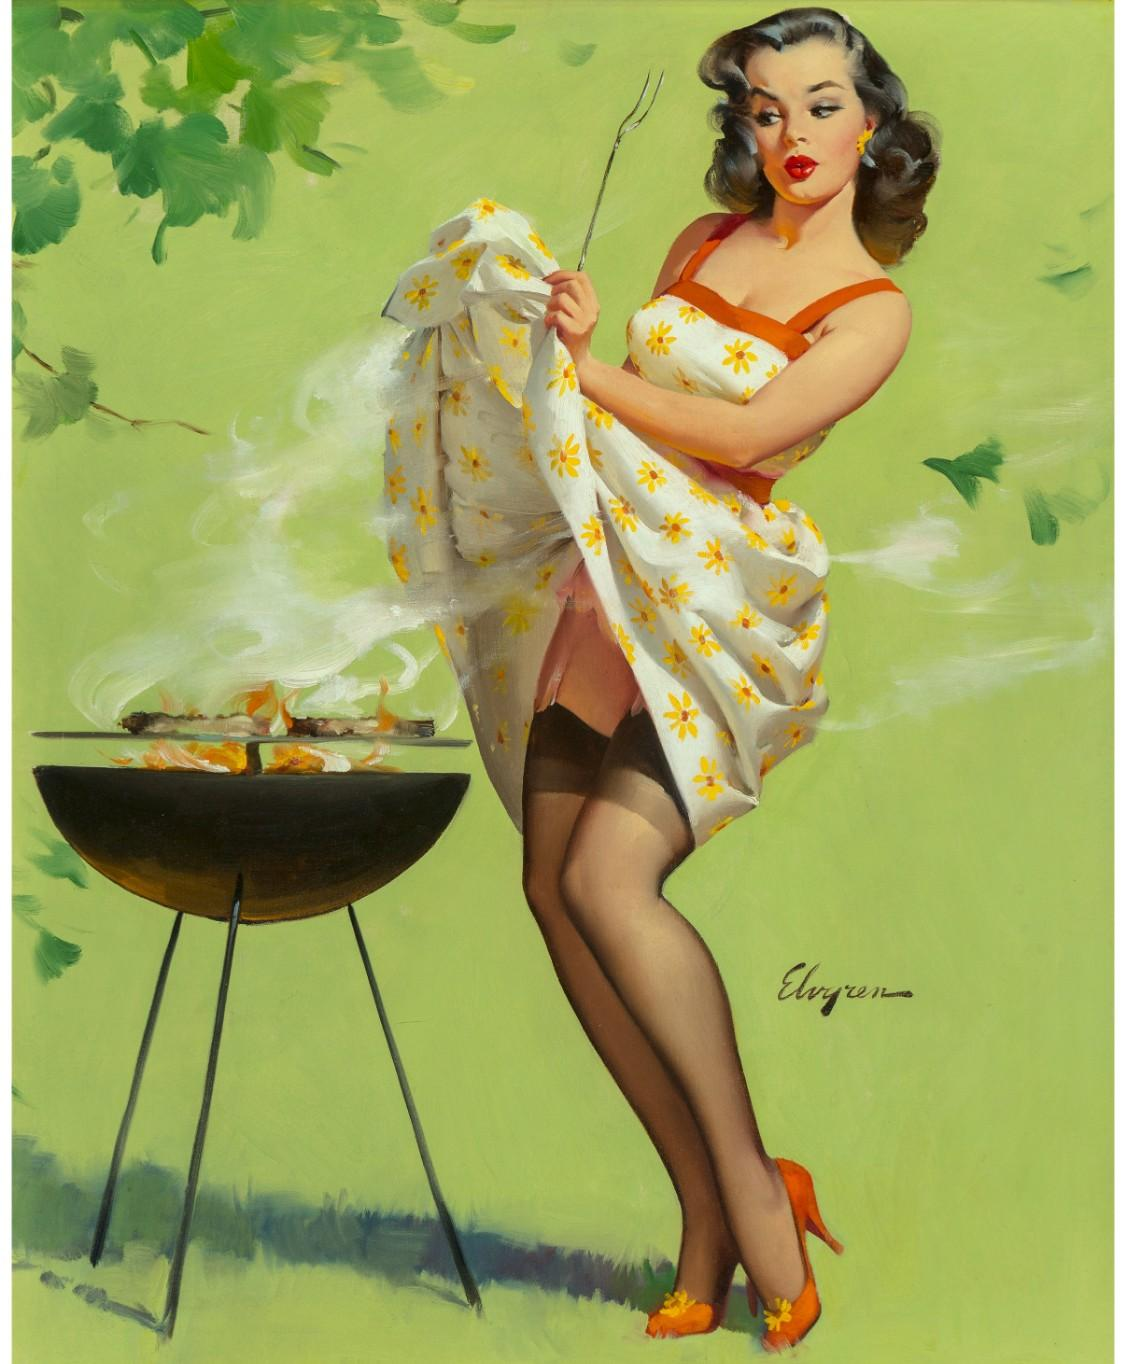 Gil Elvgren, Smoke Screen, 1958